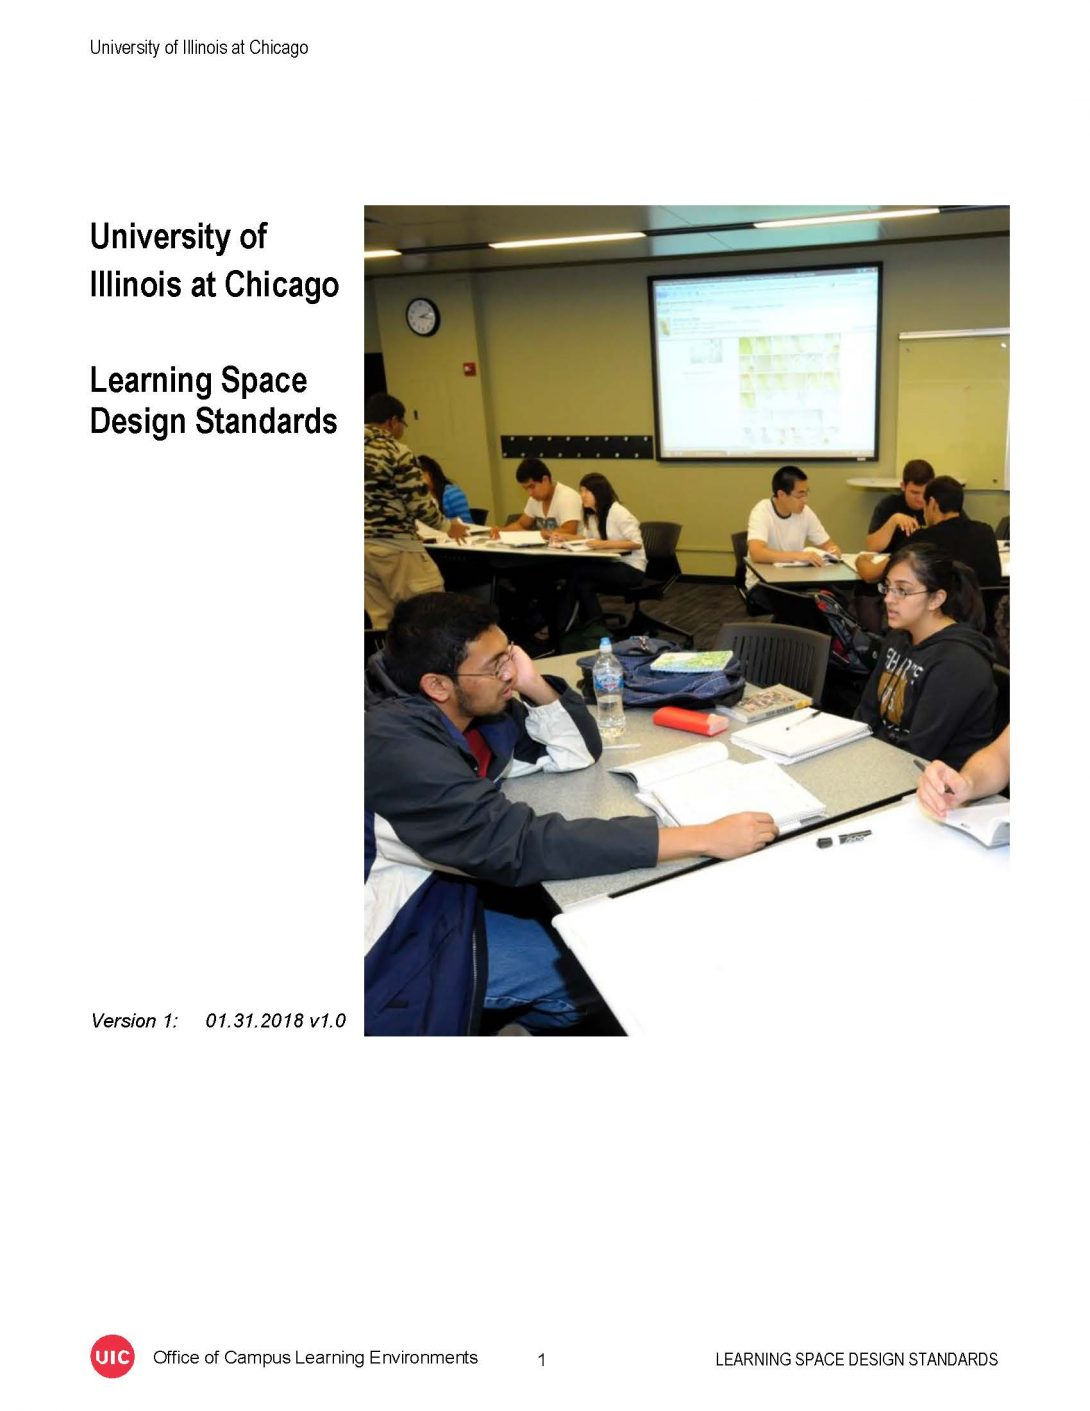 Learning Space Design Standards